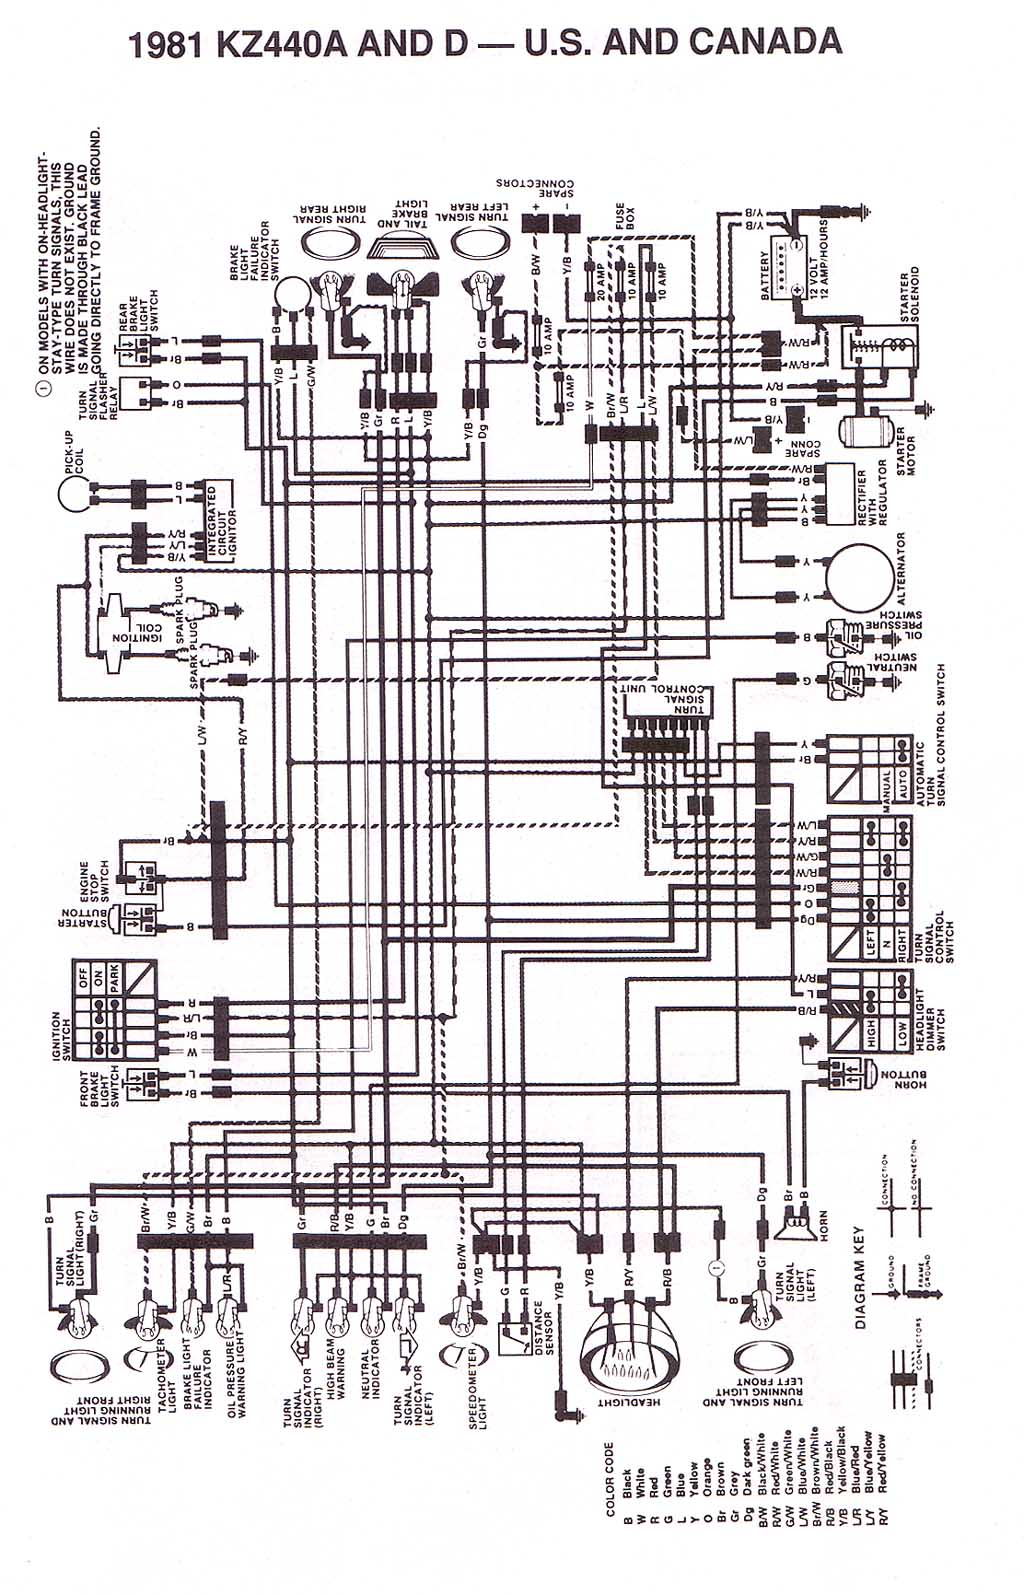 KZ440A and D wiring diagram (US) 81 kawasaki kz440 what is this darn wire kz400 wiring diagram at alyssarenee.co